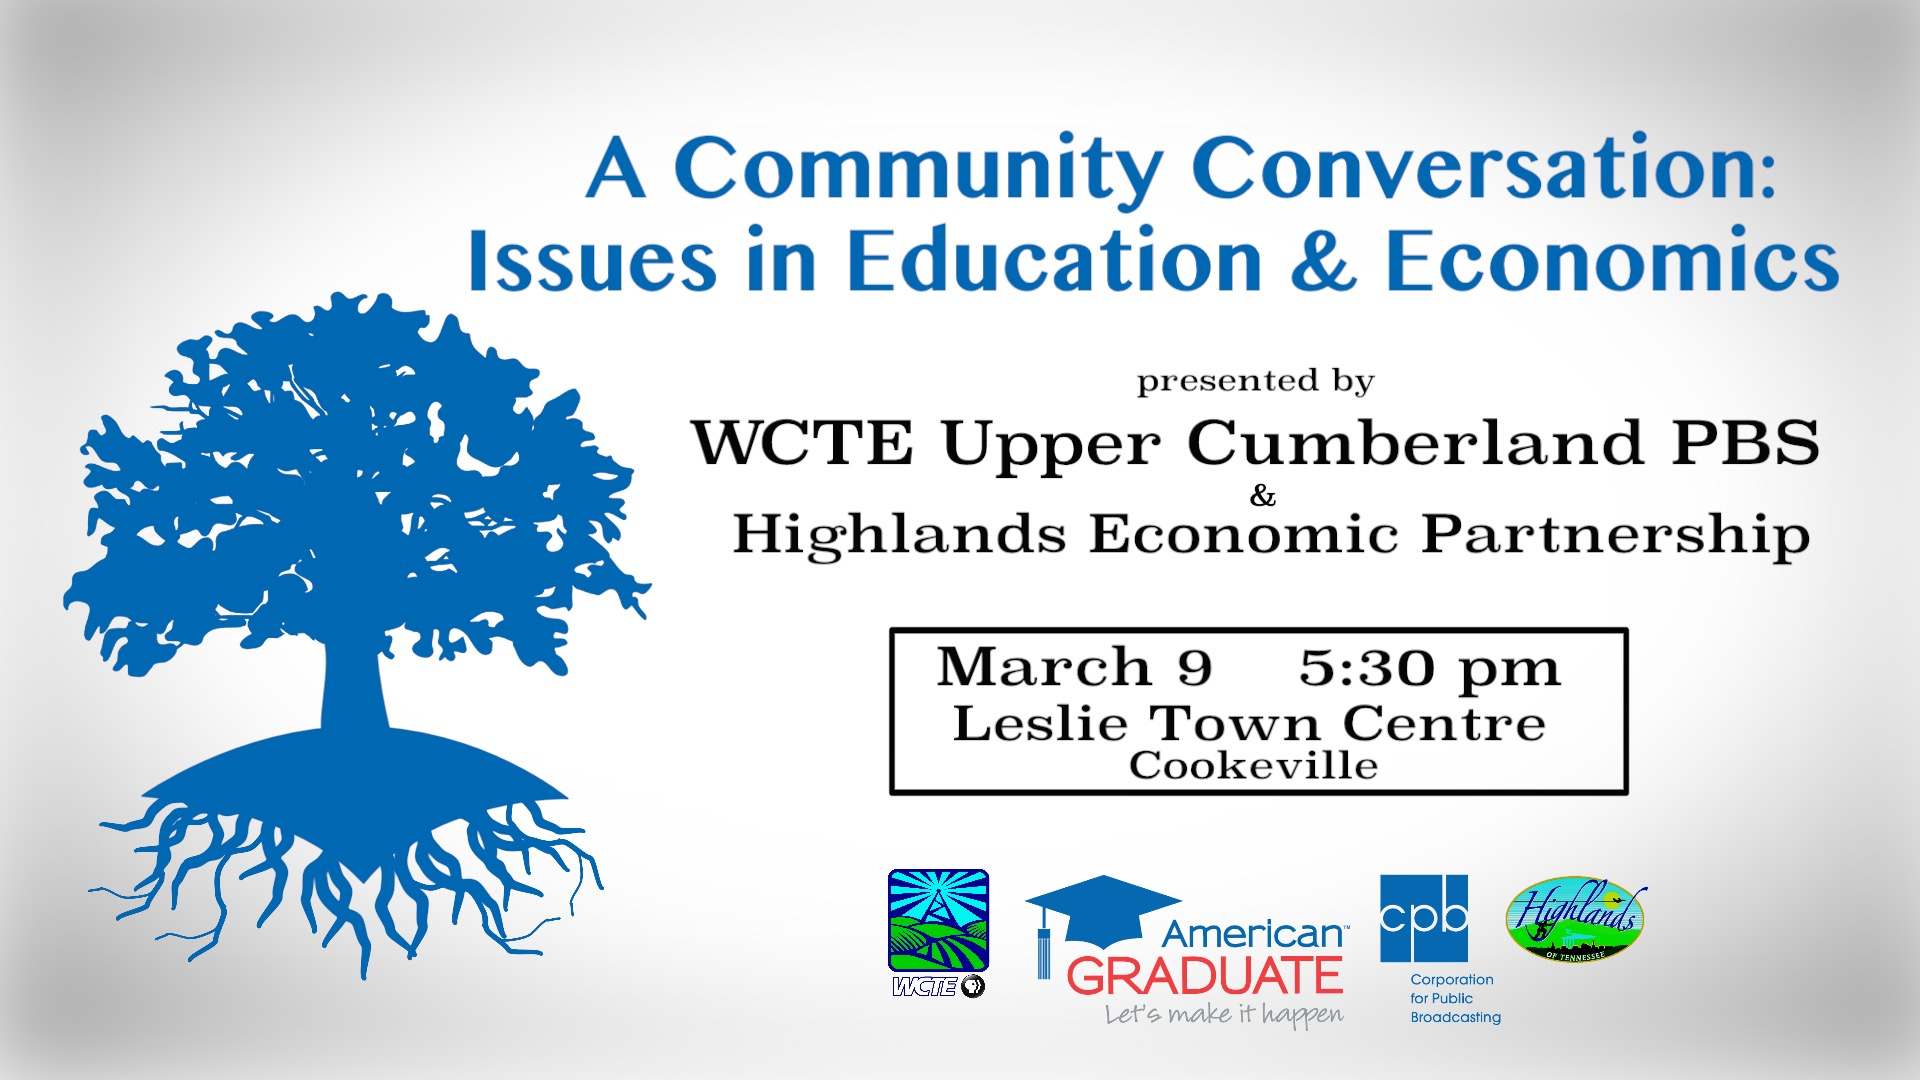 A Community Conversation: Issues in Education & Economics